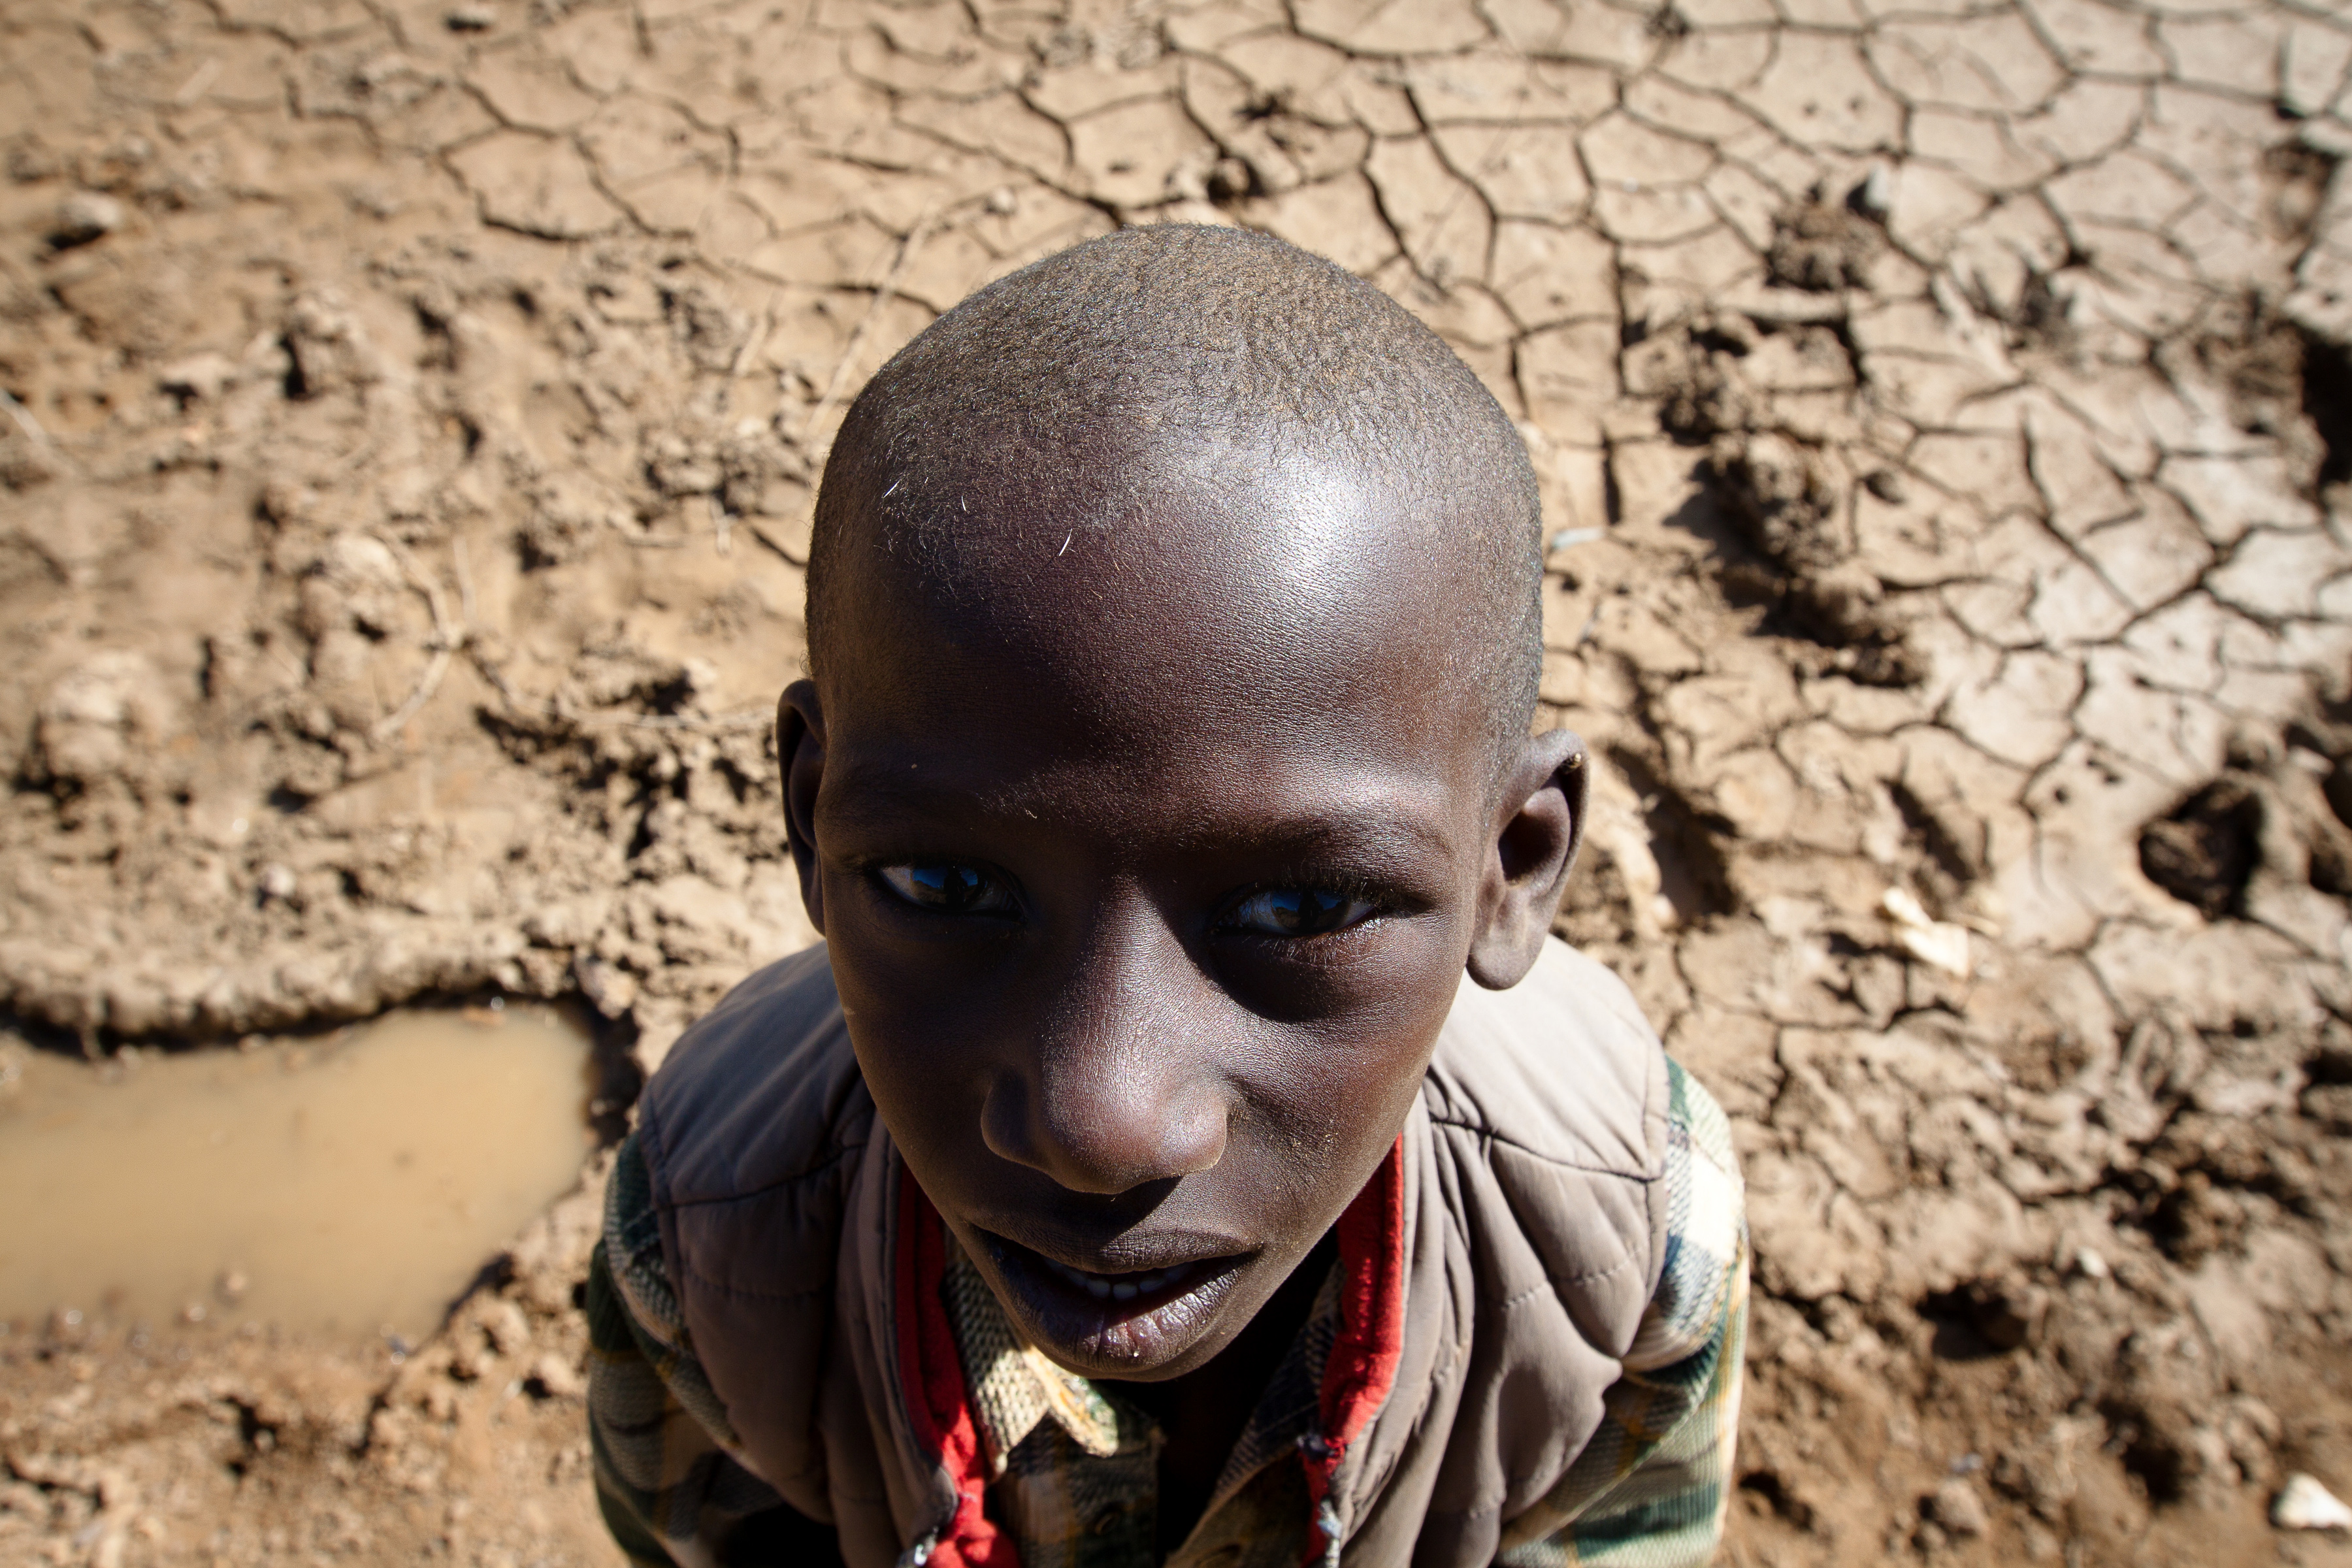 African Children Starving Feed my starving childrenAfrican Children Starving Vulture